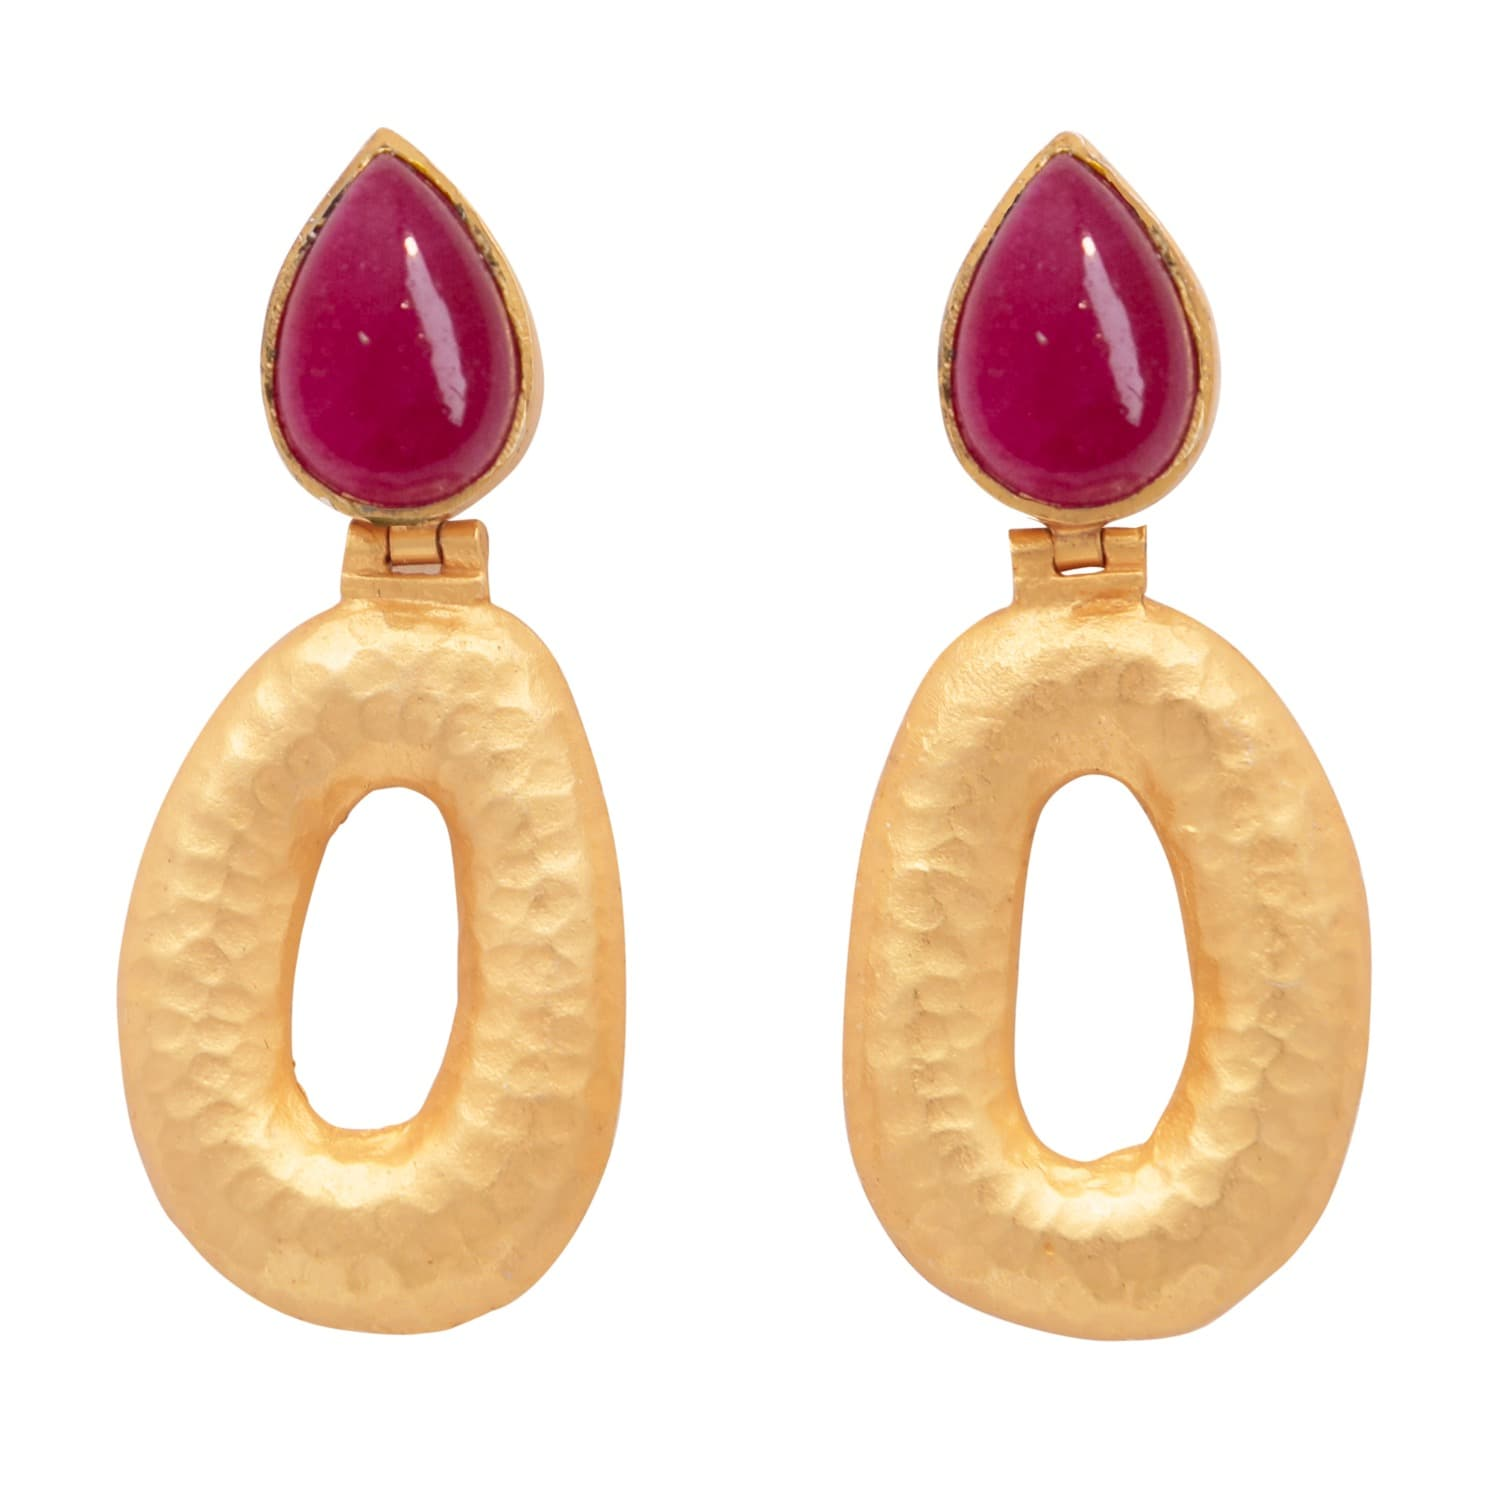 oval e earrings splatter mattegold paint matte gold